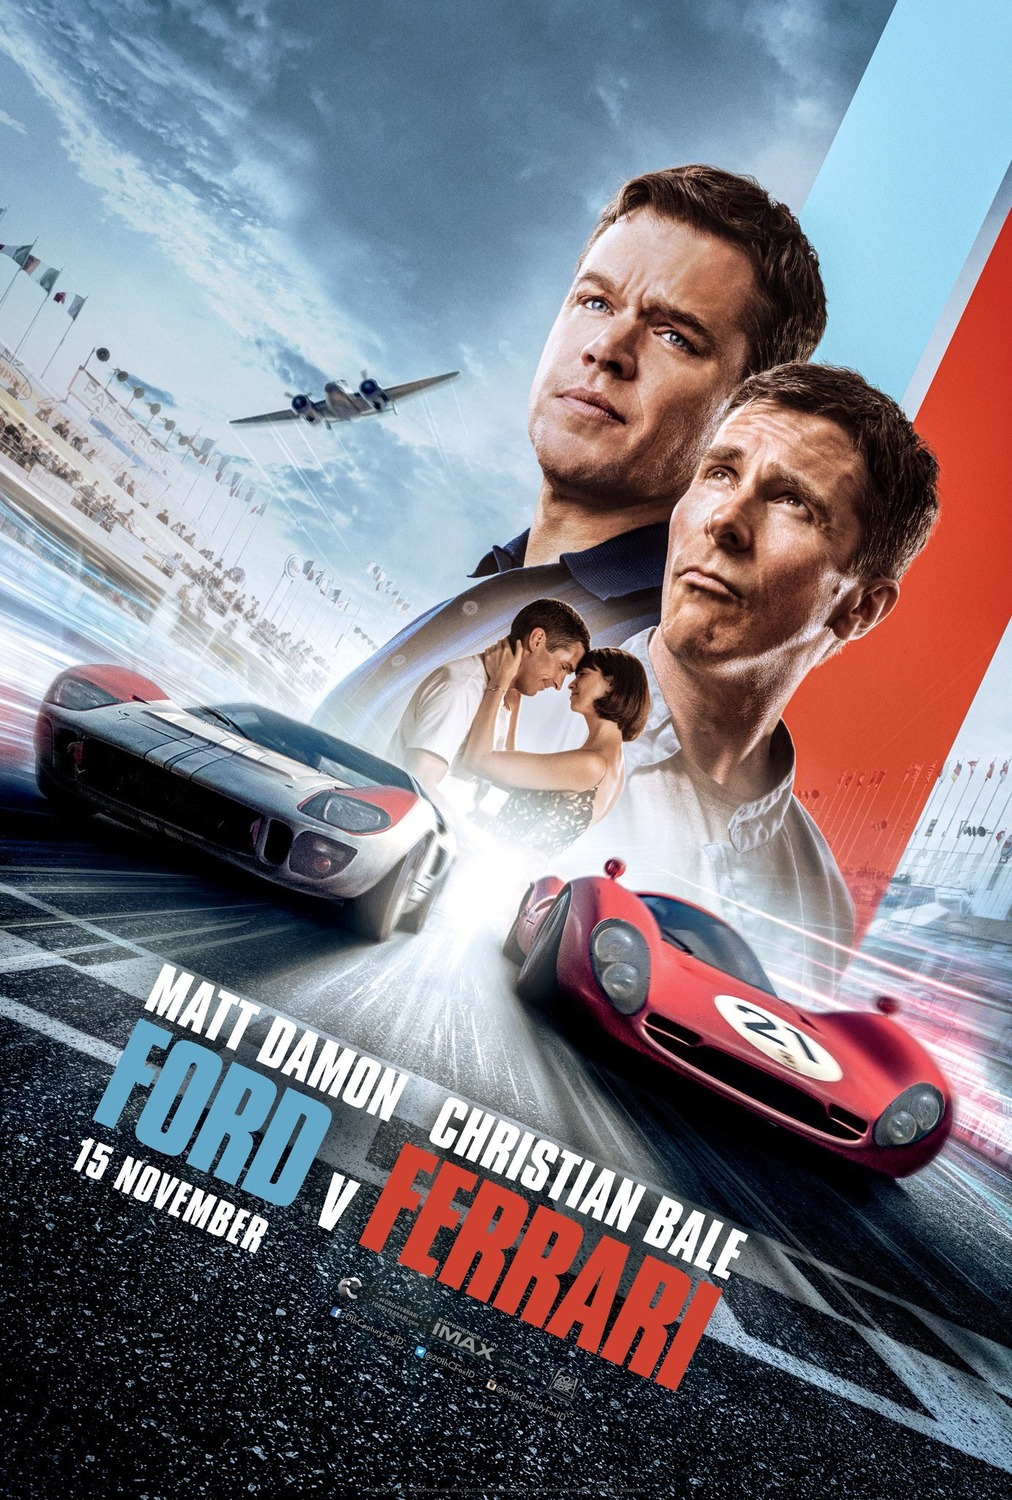 Ford v Ferrari races to first place at weekend box office